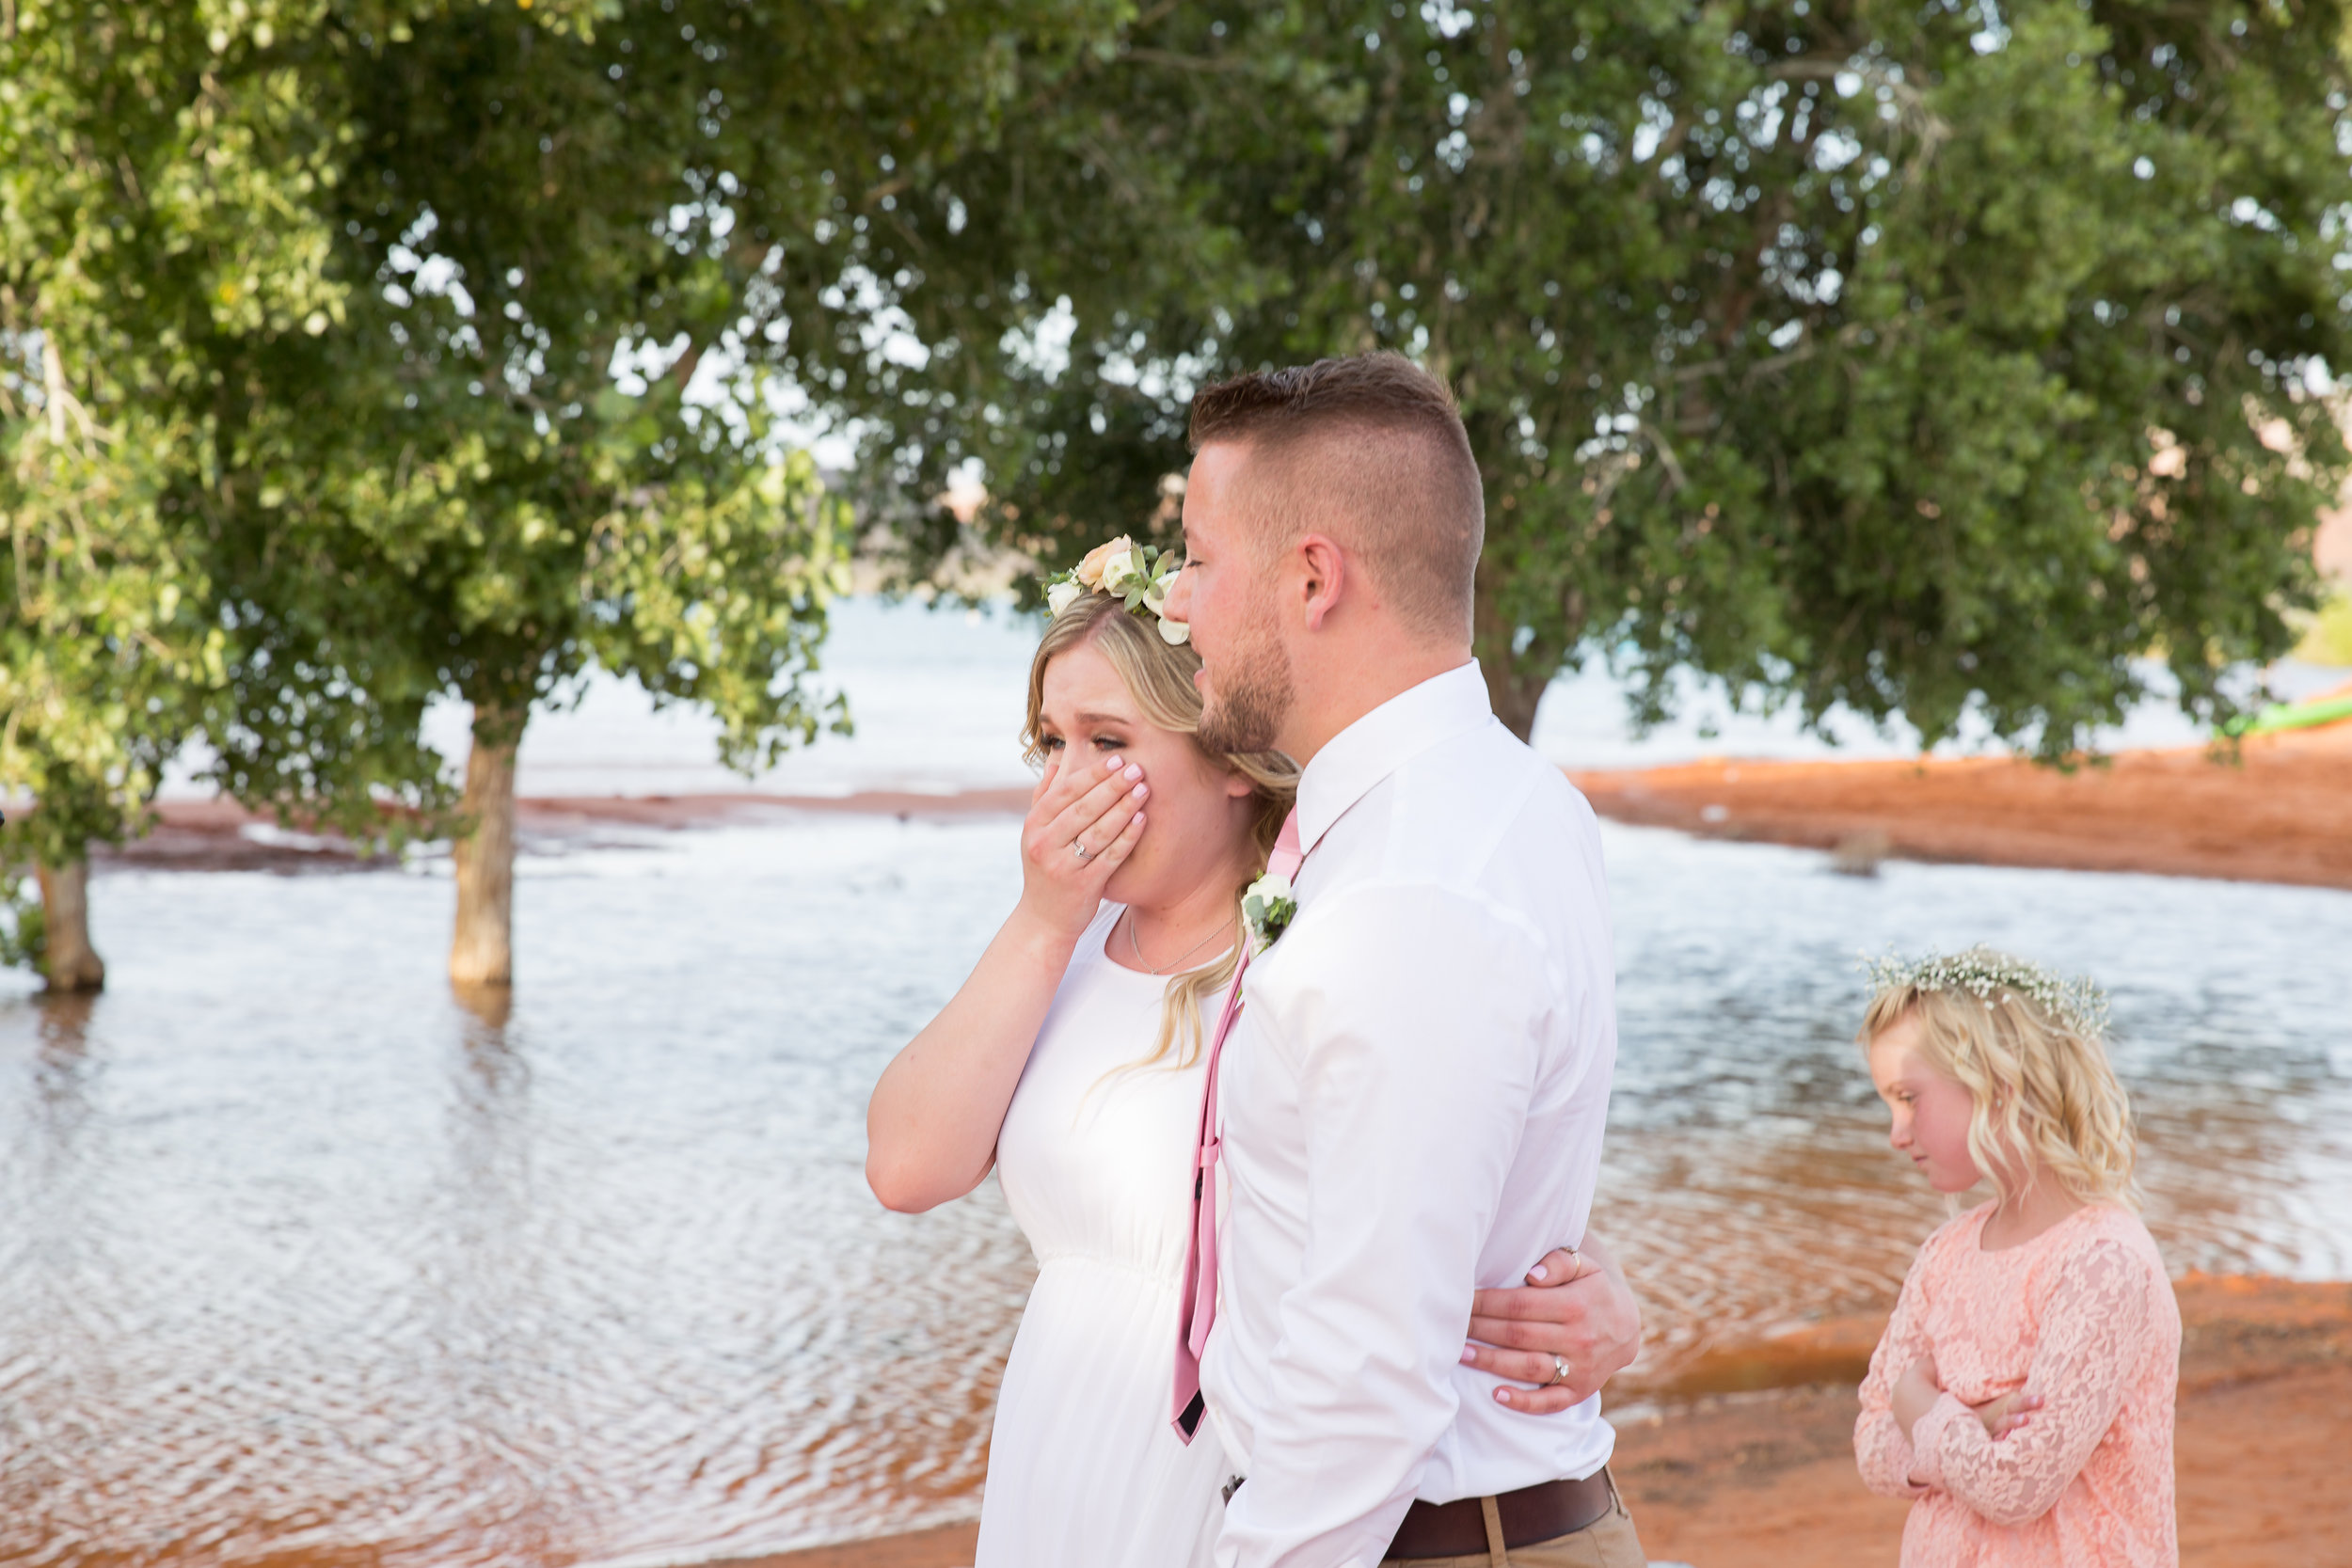 A+C Elopement Utah Wedding Photographer -51.jpg